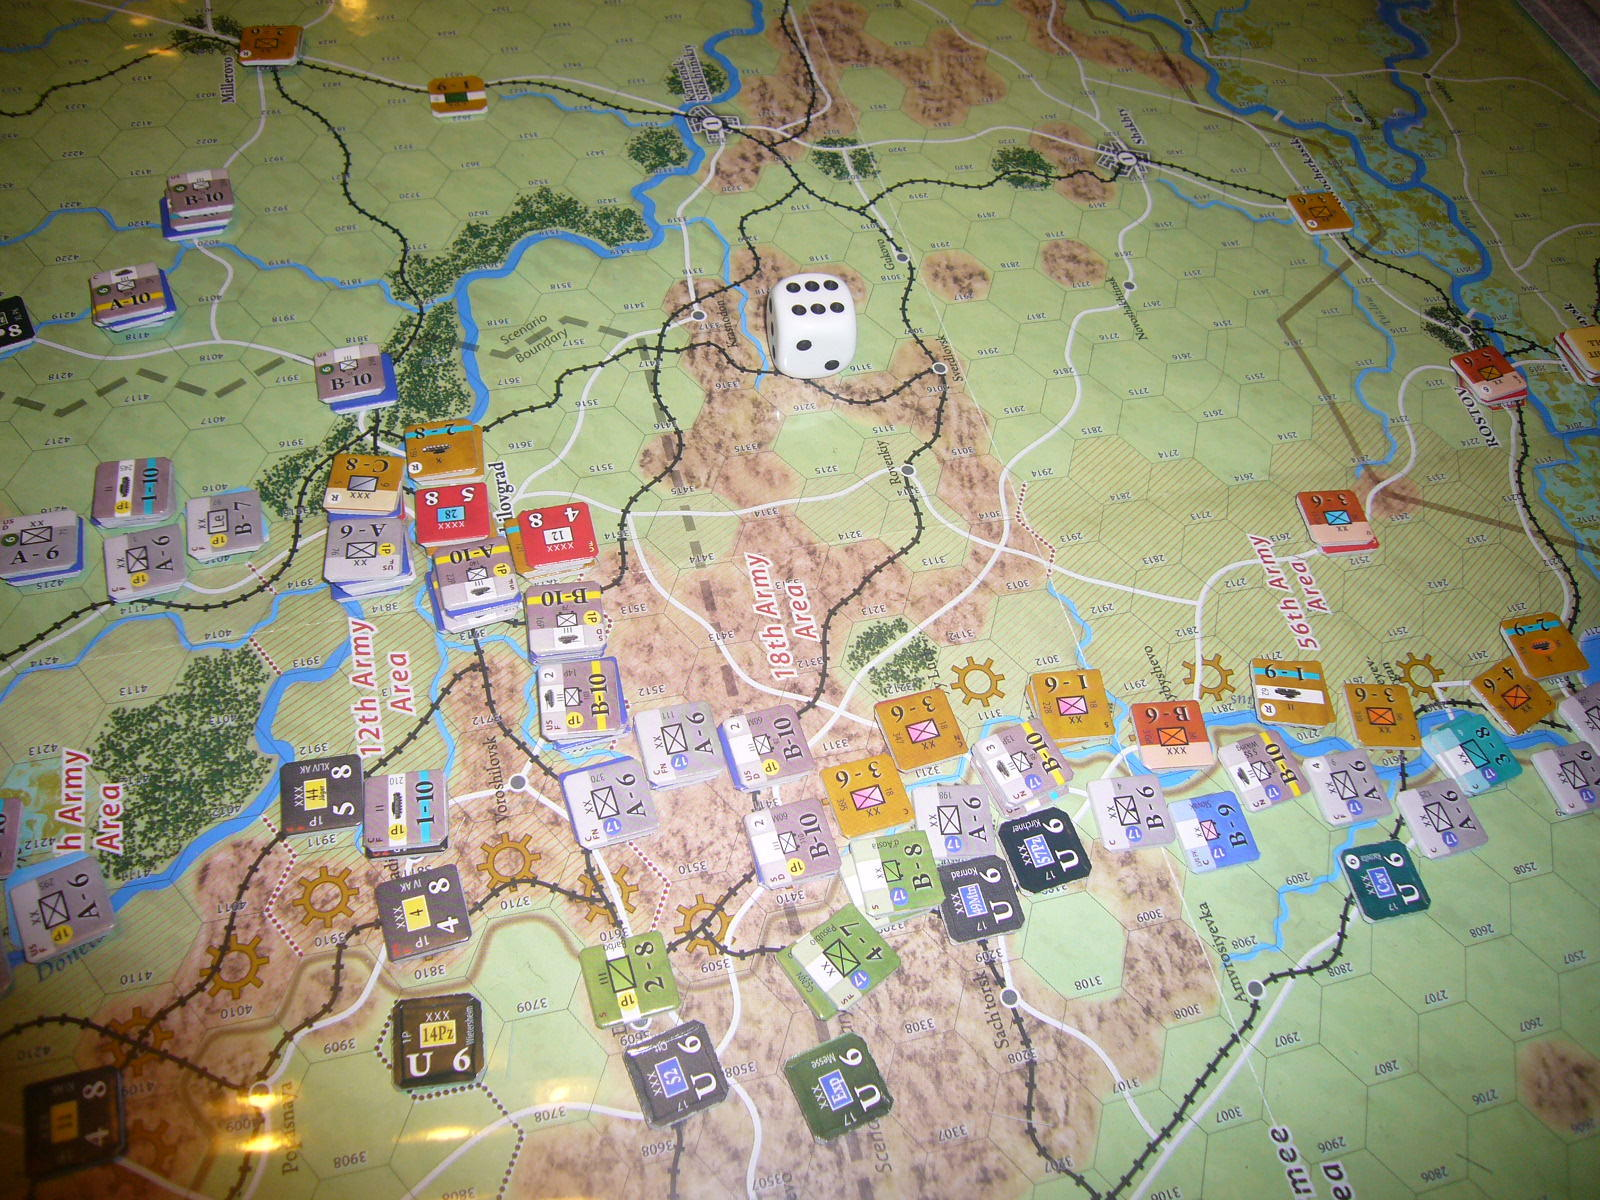 (Compass)FALL BLAU: Army Group South, June to December 1942 青作戦:史実の7月キャンペーンお試し5人戦➌_b0173672_19572739.jpg